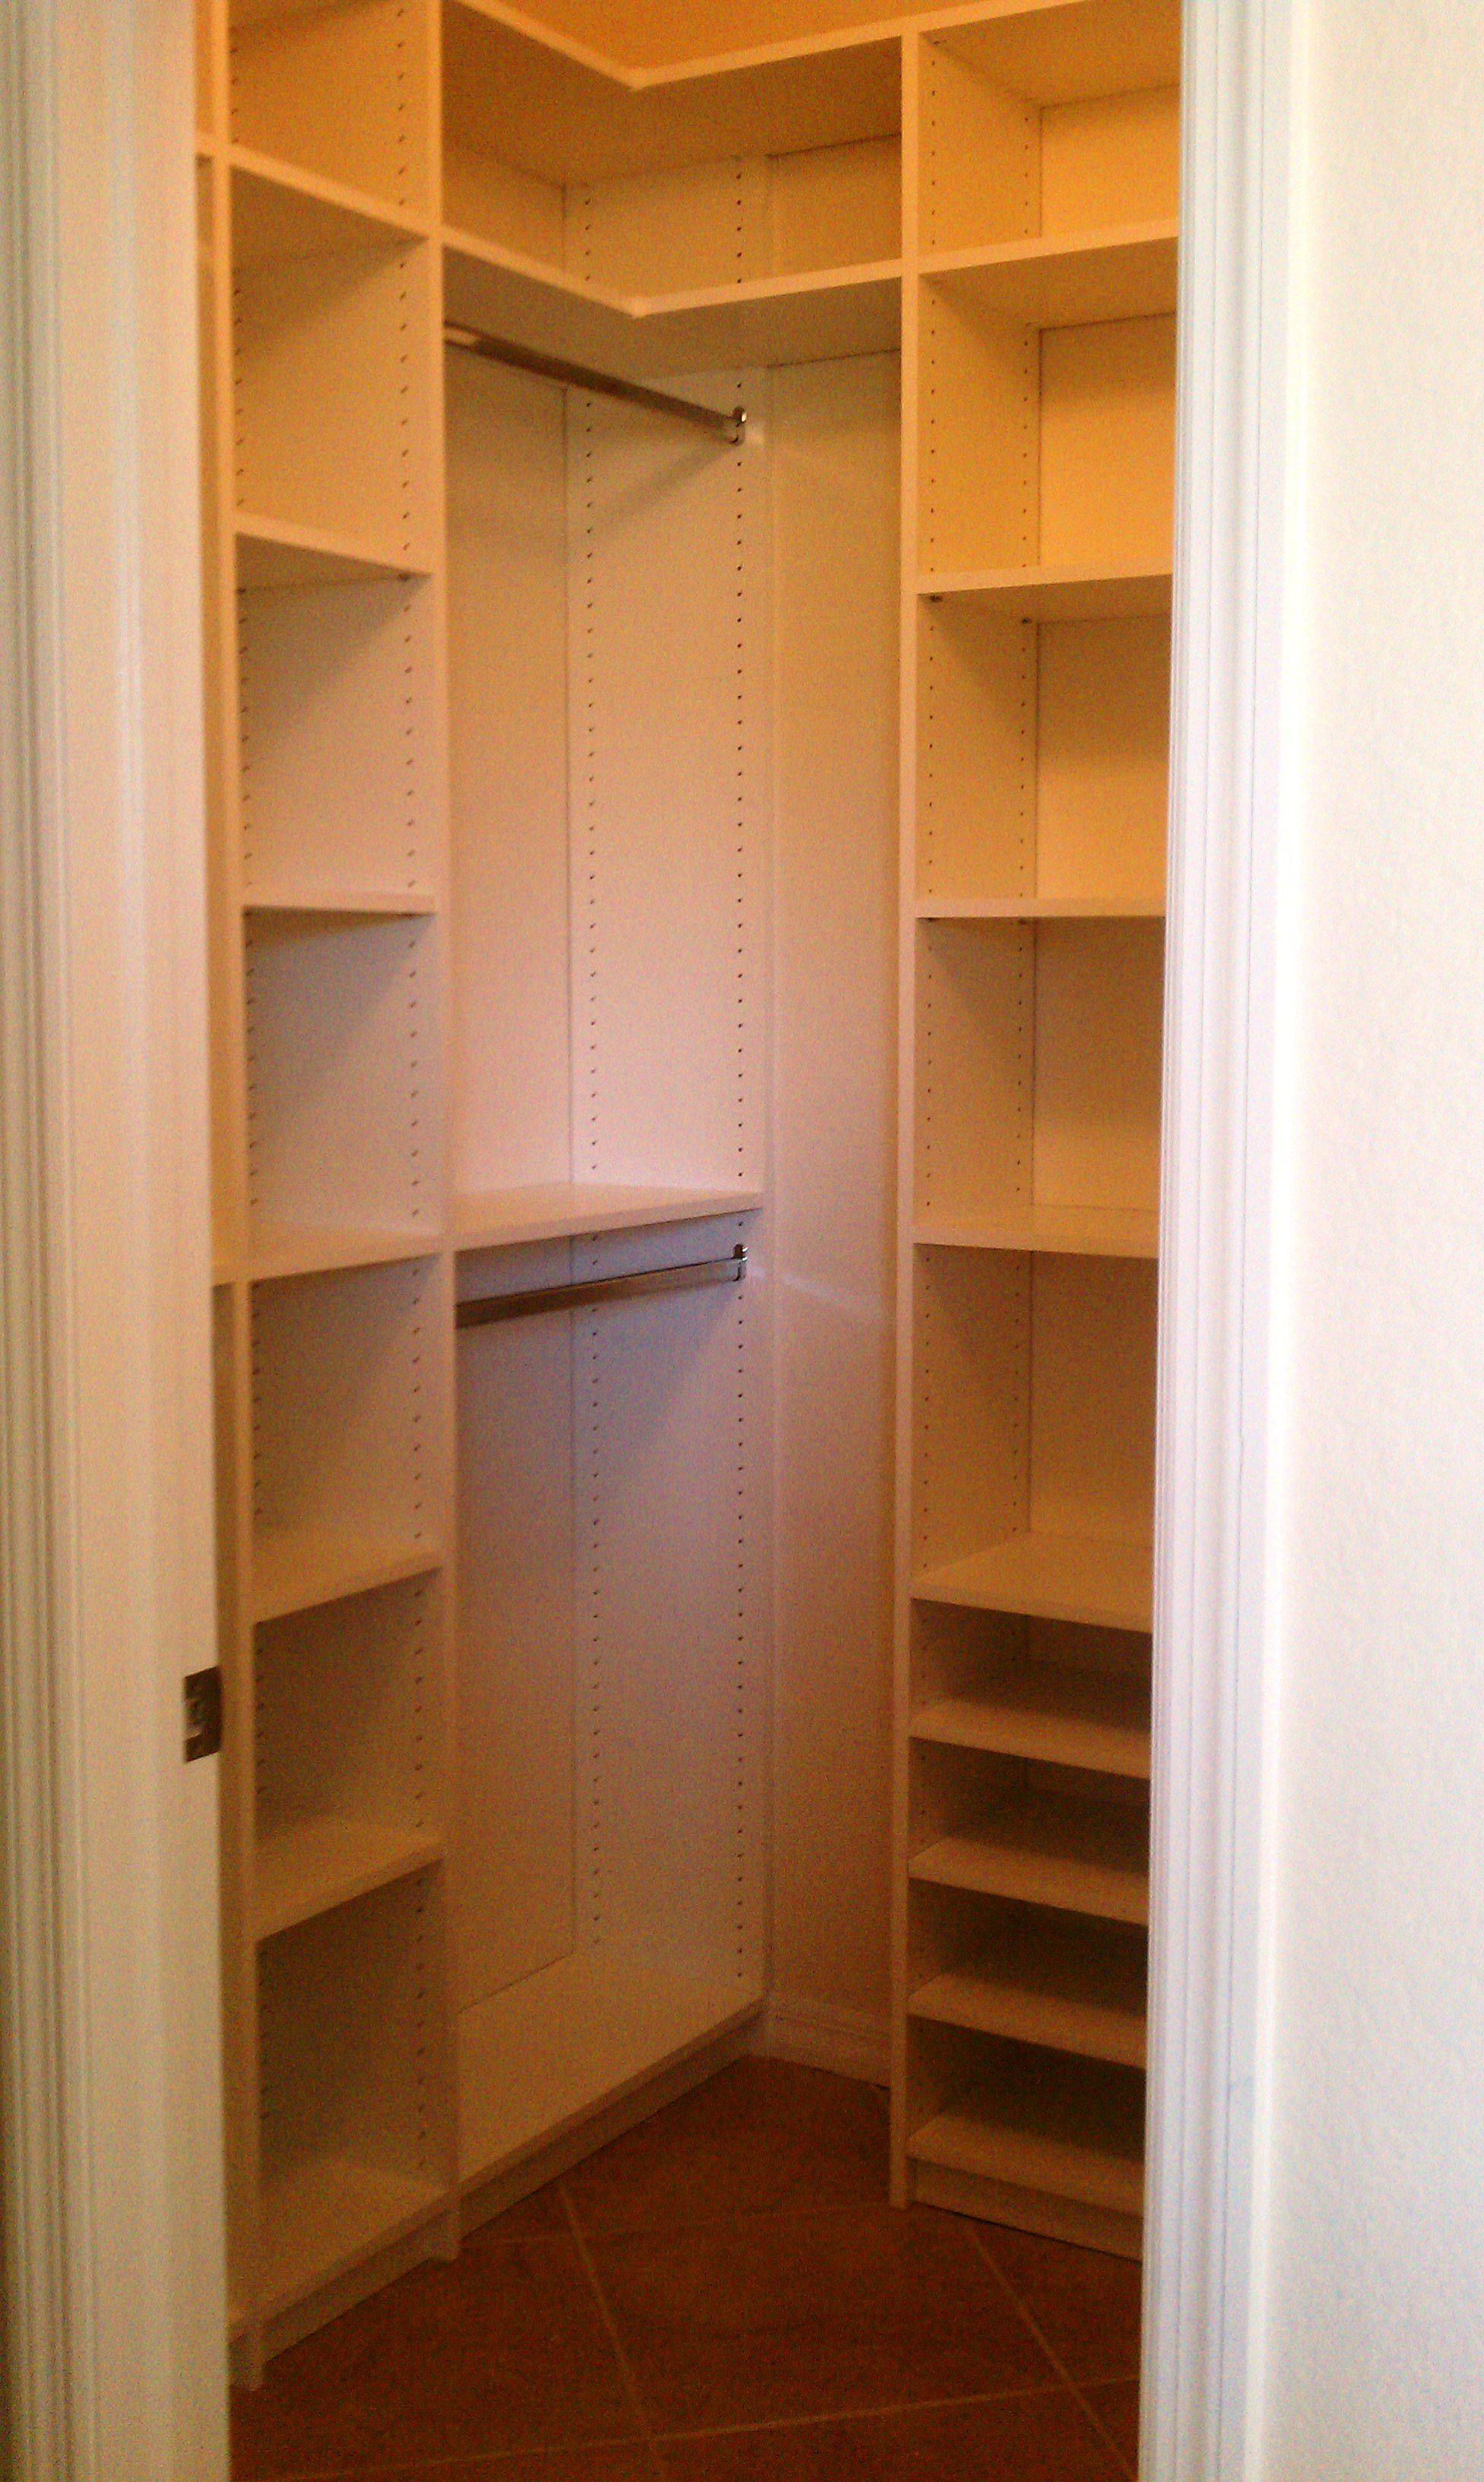 Adorable Design Of The Closet Organizers Ideas With Brown Wooden Shelves Added With Brown Wooden Floor Ideas